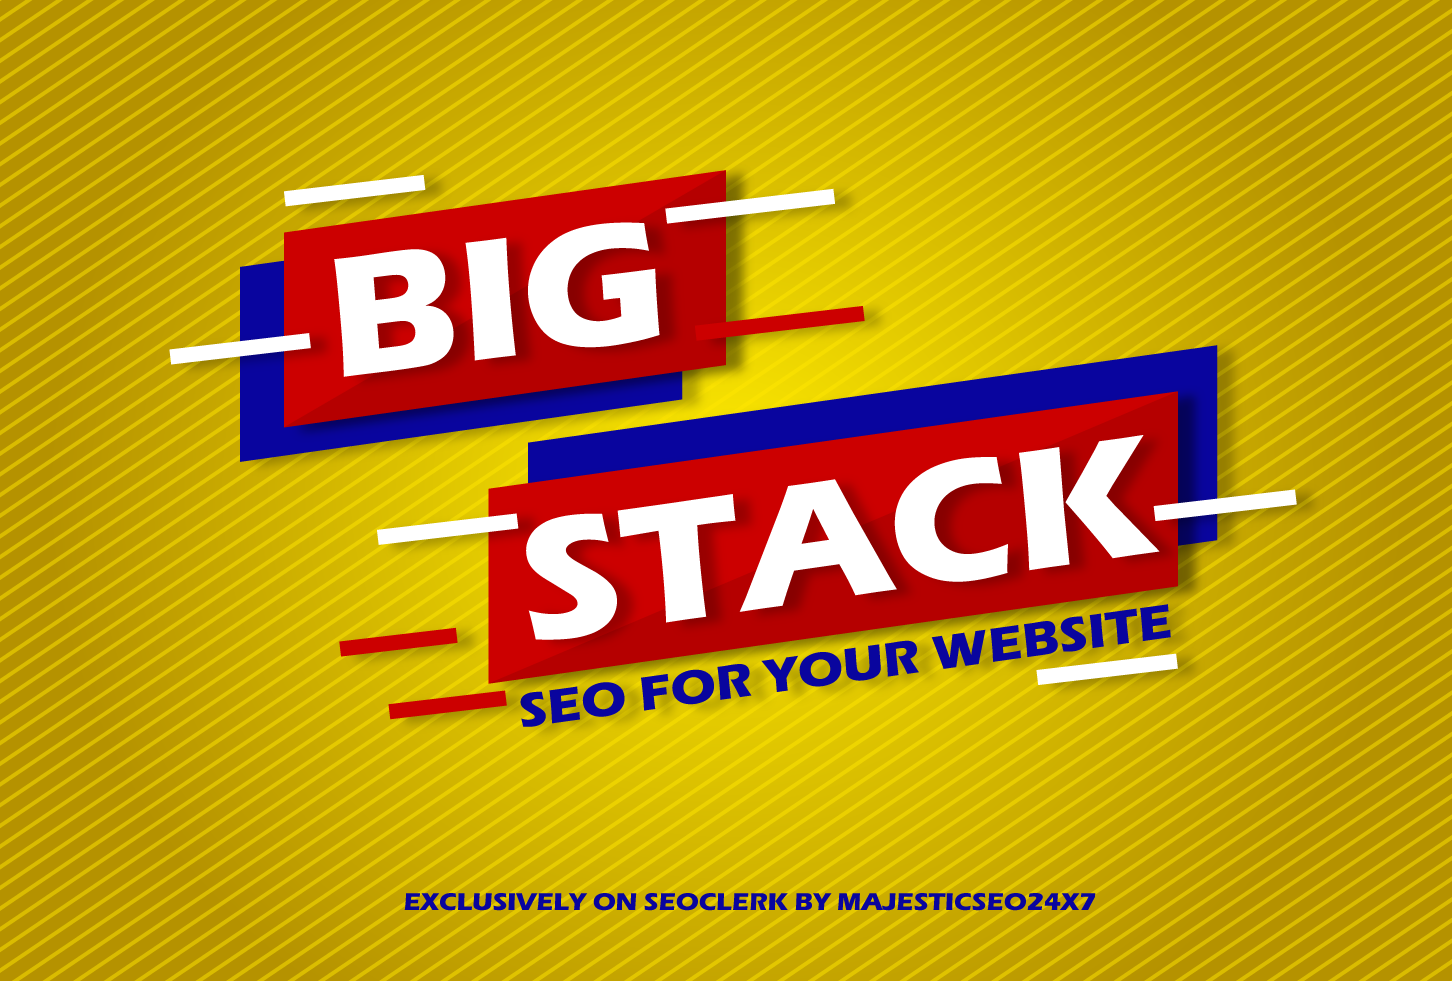 Daily Create Backlinks,  BIG STACK MONTHLY SEO for increase your website ranking on search engine